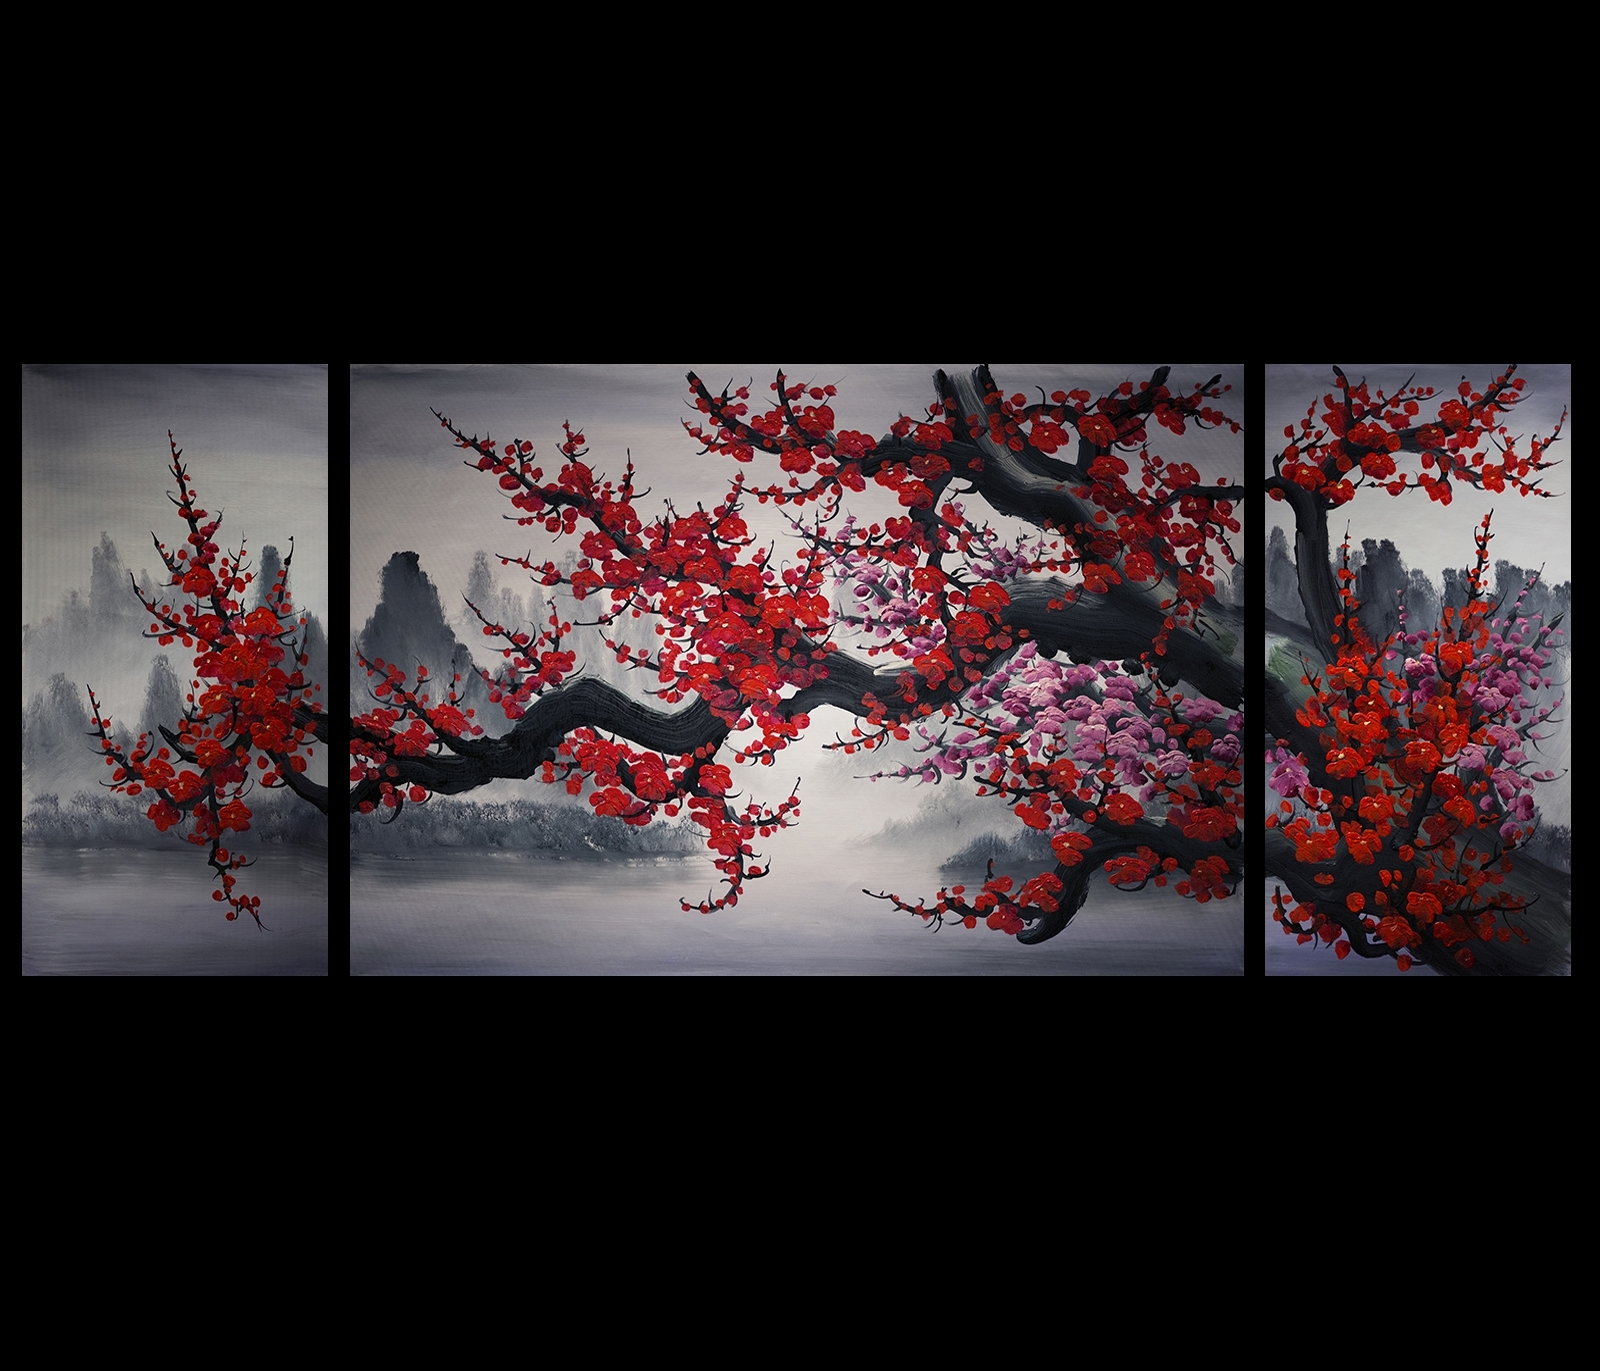 Chinese Cherry Blossom Painting Original Modern Wall Art Decor With Regard To Most Popular Abstract Cherry Blossom Wall Art (Gallery 10 of 20)